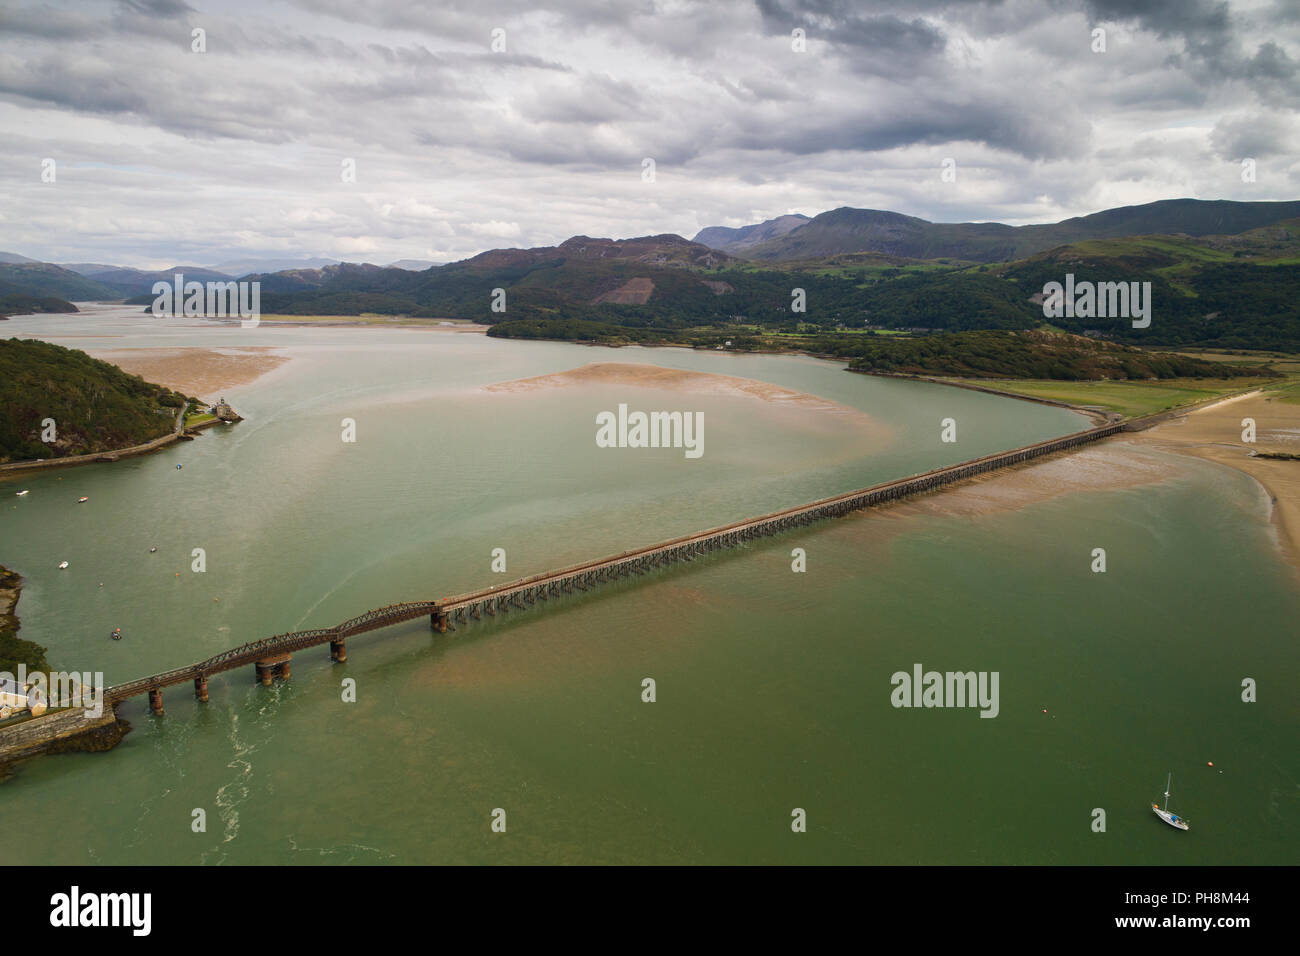 An aerial drone view of the railway viaduct bridge over the Mawddach estuary at Barmouth (Y Bermo / Abermaw in welsh) - a small welsh town and seaside resort , Gwynedd, Snowdonia National Park, North Wales UK (made by a CCA licenced and insured drone operator) Stock Photo